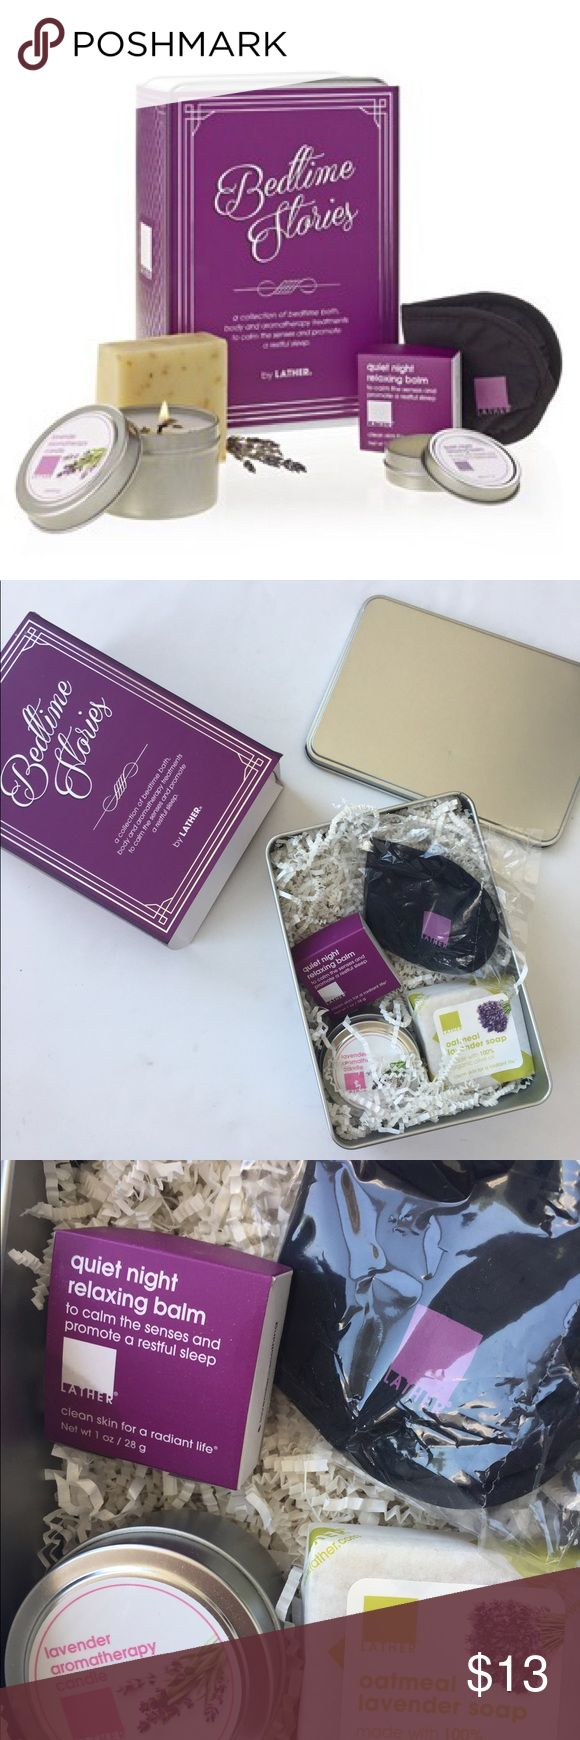 BEDTIME STORIES GIFT SET BY LATHER A collection of lavender-infused, slumber-inducing bath, body and aromatherapy treatments to calm the senses and promote restful sleep.oatmeal lavender •olive oil soap Net wt 4 oz •lavender aromatherapy candle Net wt 4 oz •quiet night relaxing balm Net wt 1 oz •eye mask, NEW. Lather Makeup Brushes & Tools